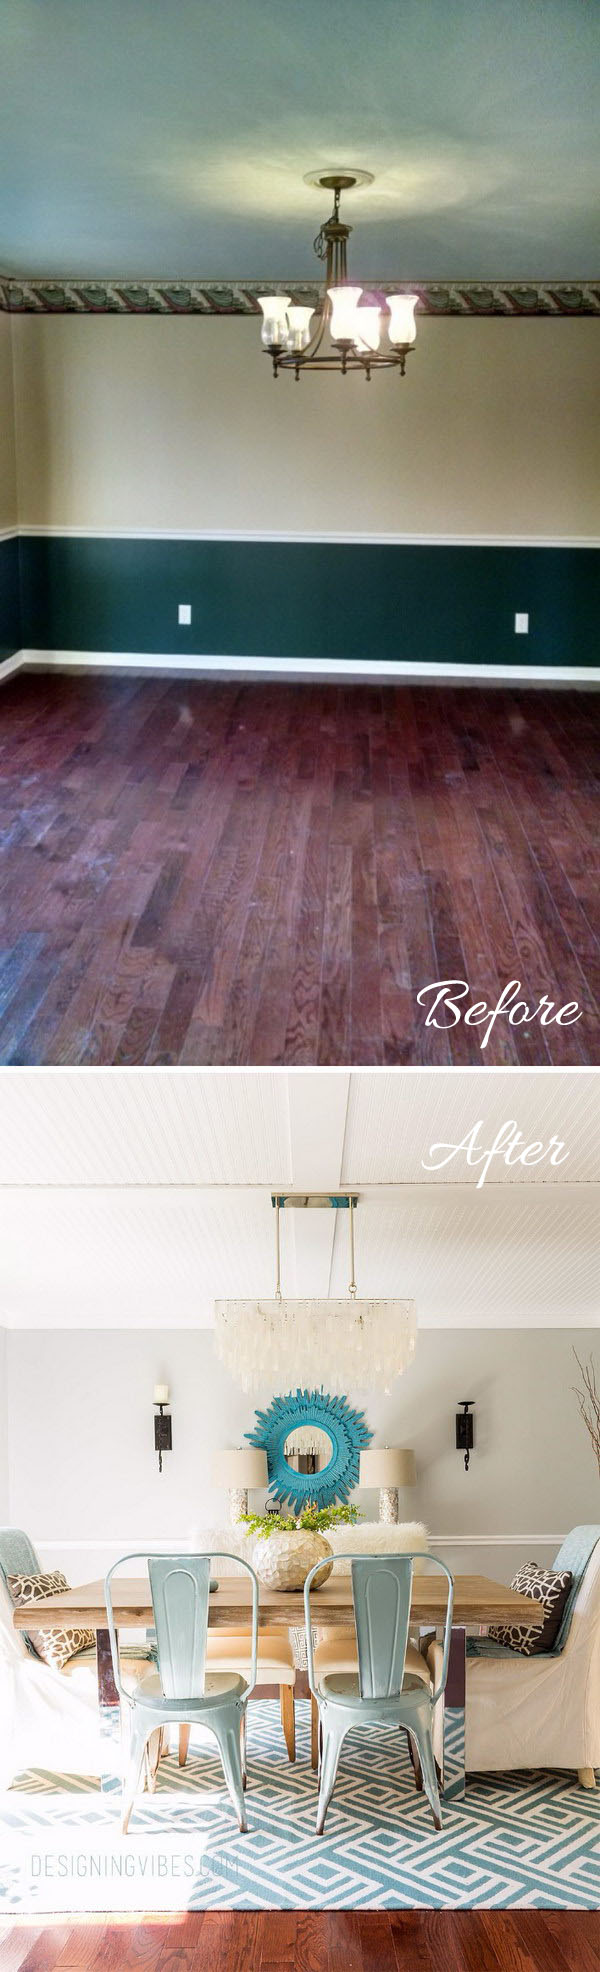 Rustic Coastal Dining Room Before and After.